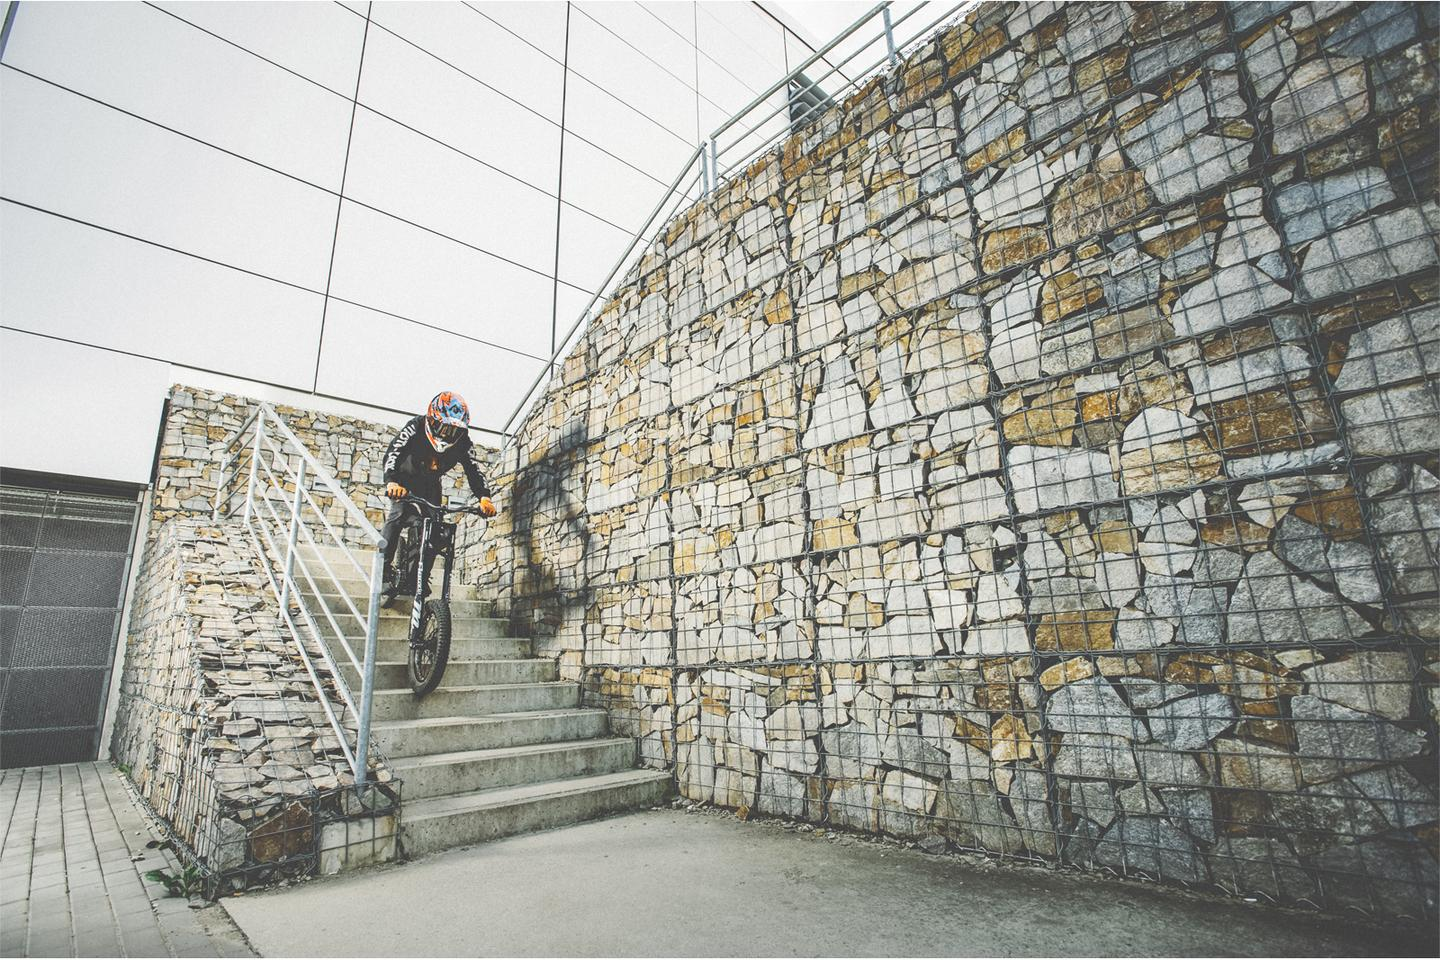 The Kuberg Freerider in action in an urban environment